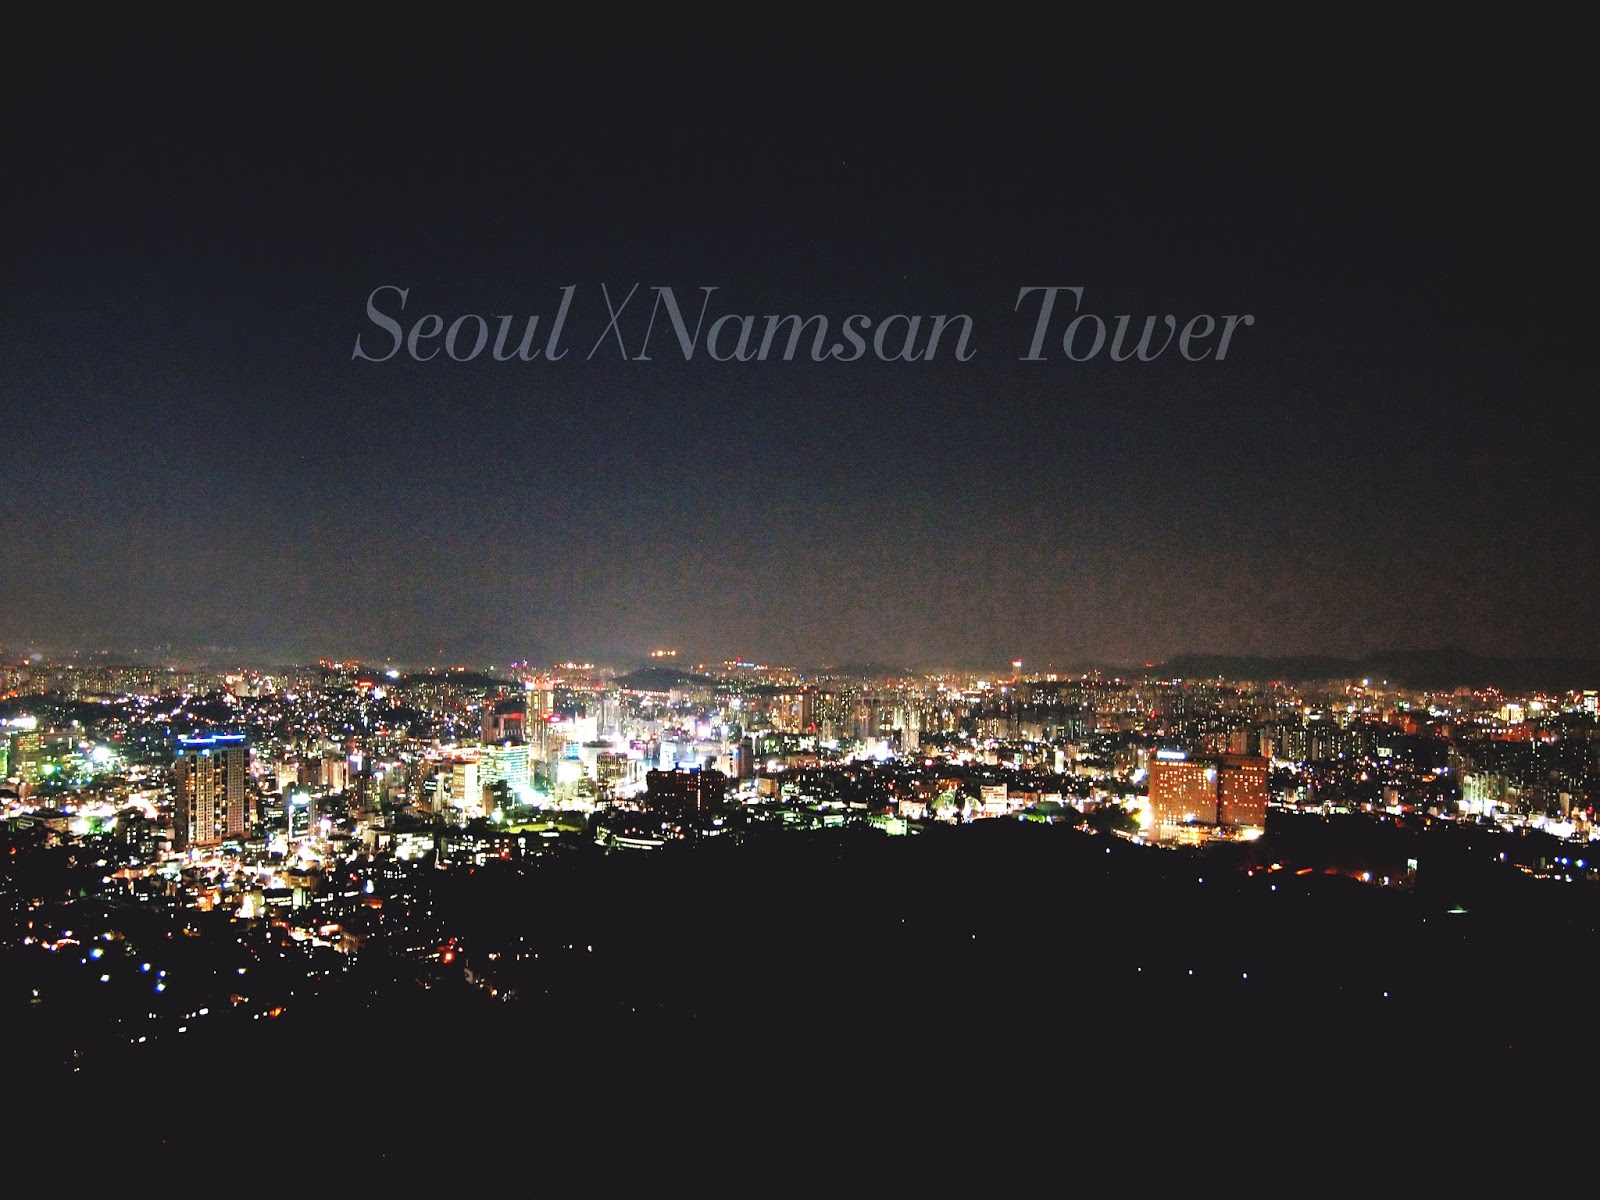 Seoul Day 1: Namsam Tower and The Buffet